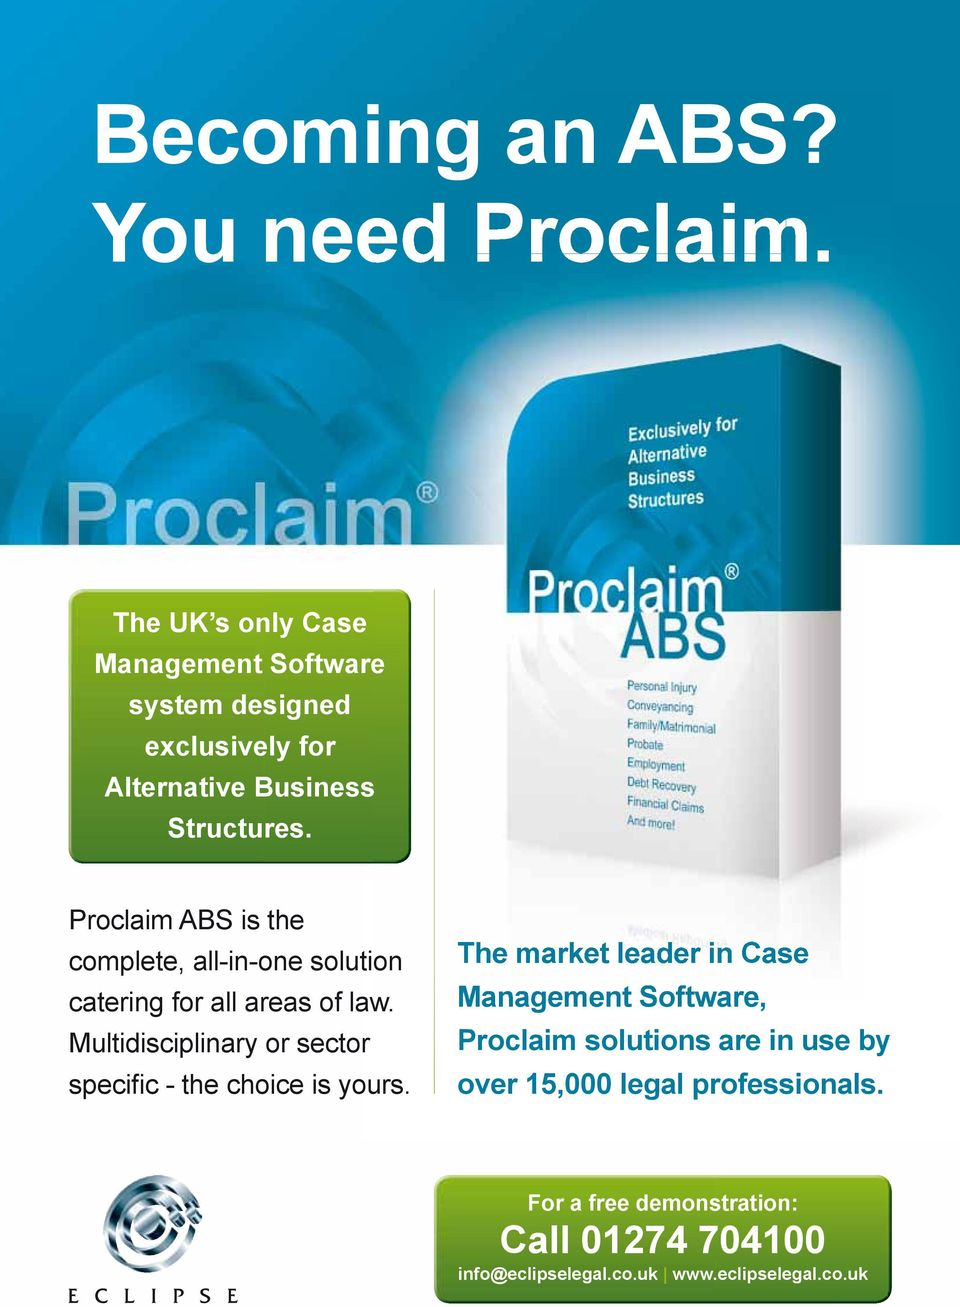 Proclaim ABS is the complete, all-in-one solution catering for all areas of law.